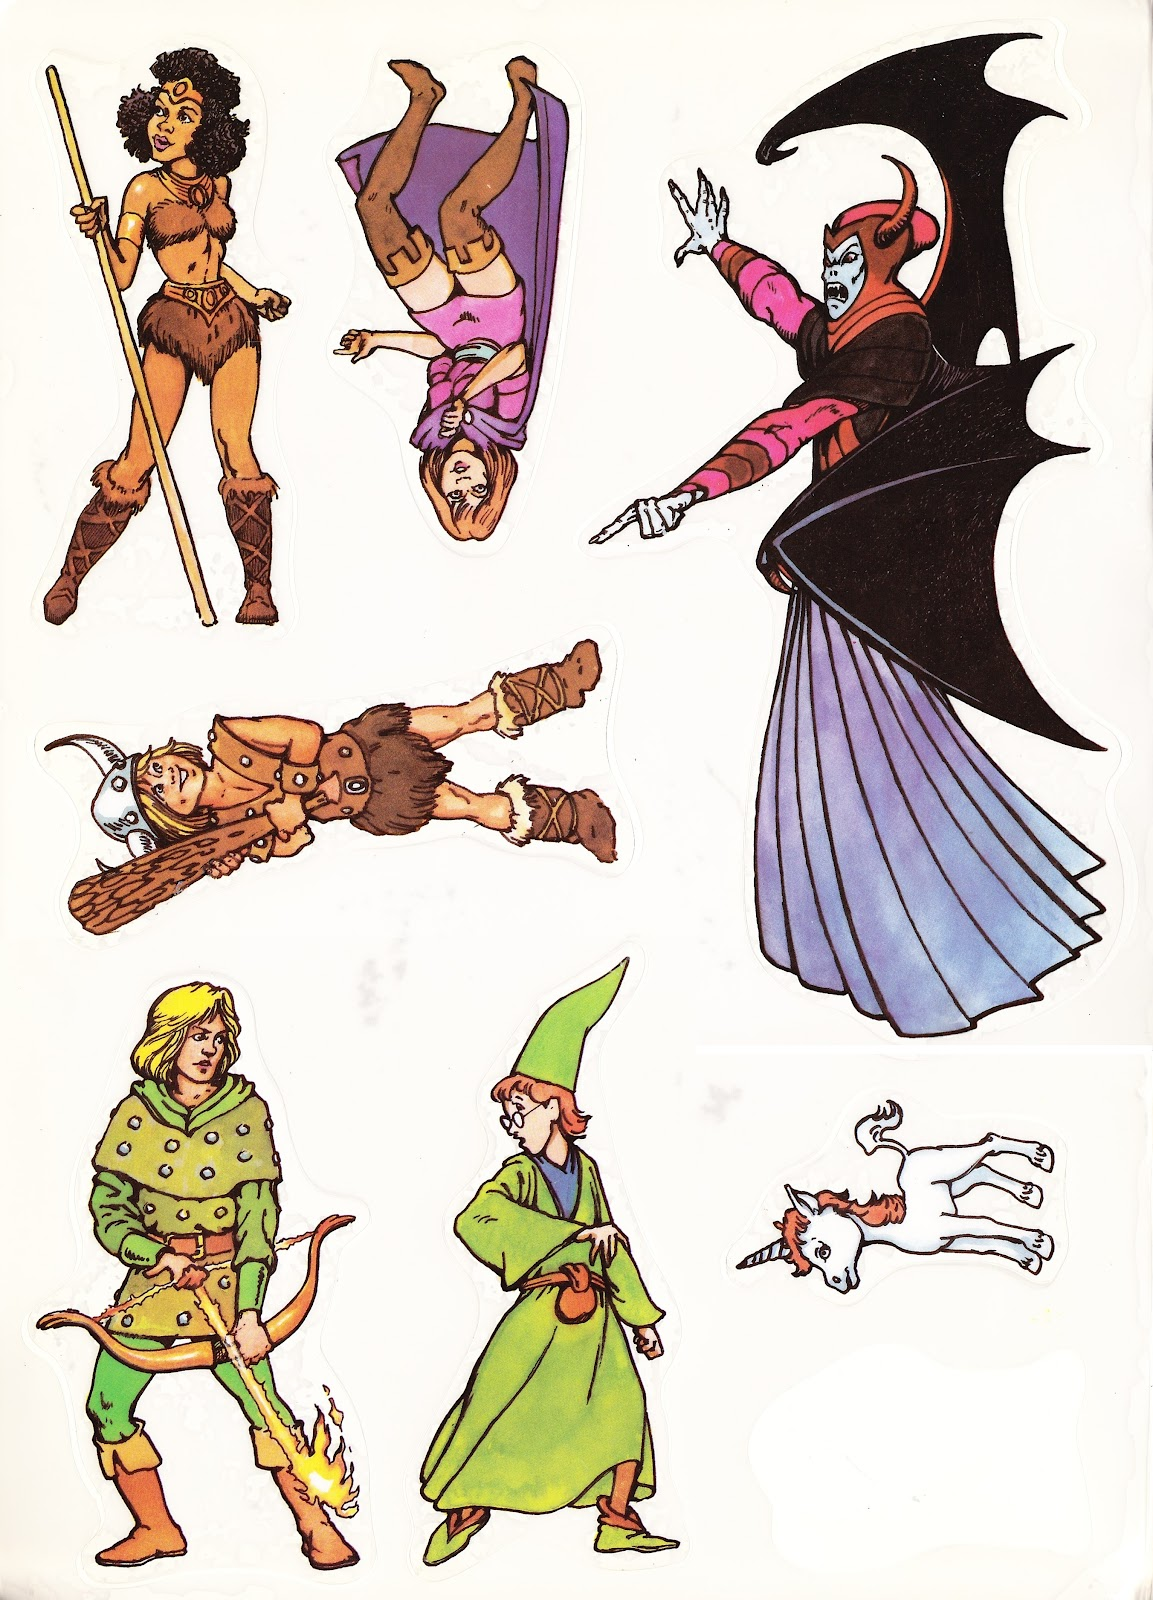 Sleleton clipart dungeons and dragon Dungeons encyclopedia: & (1987) Email